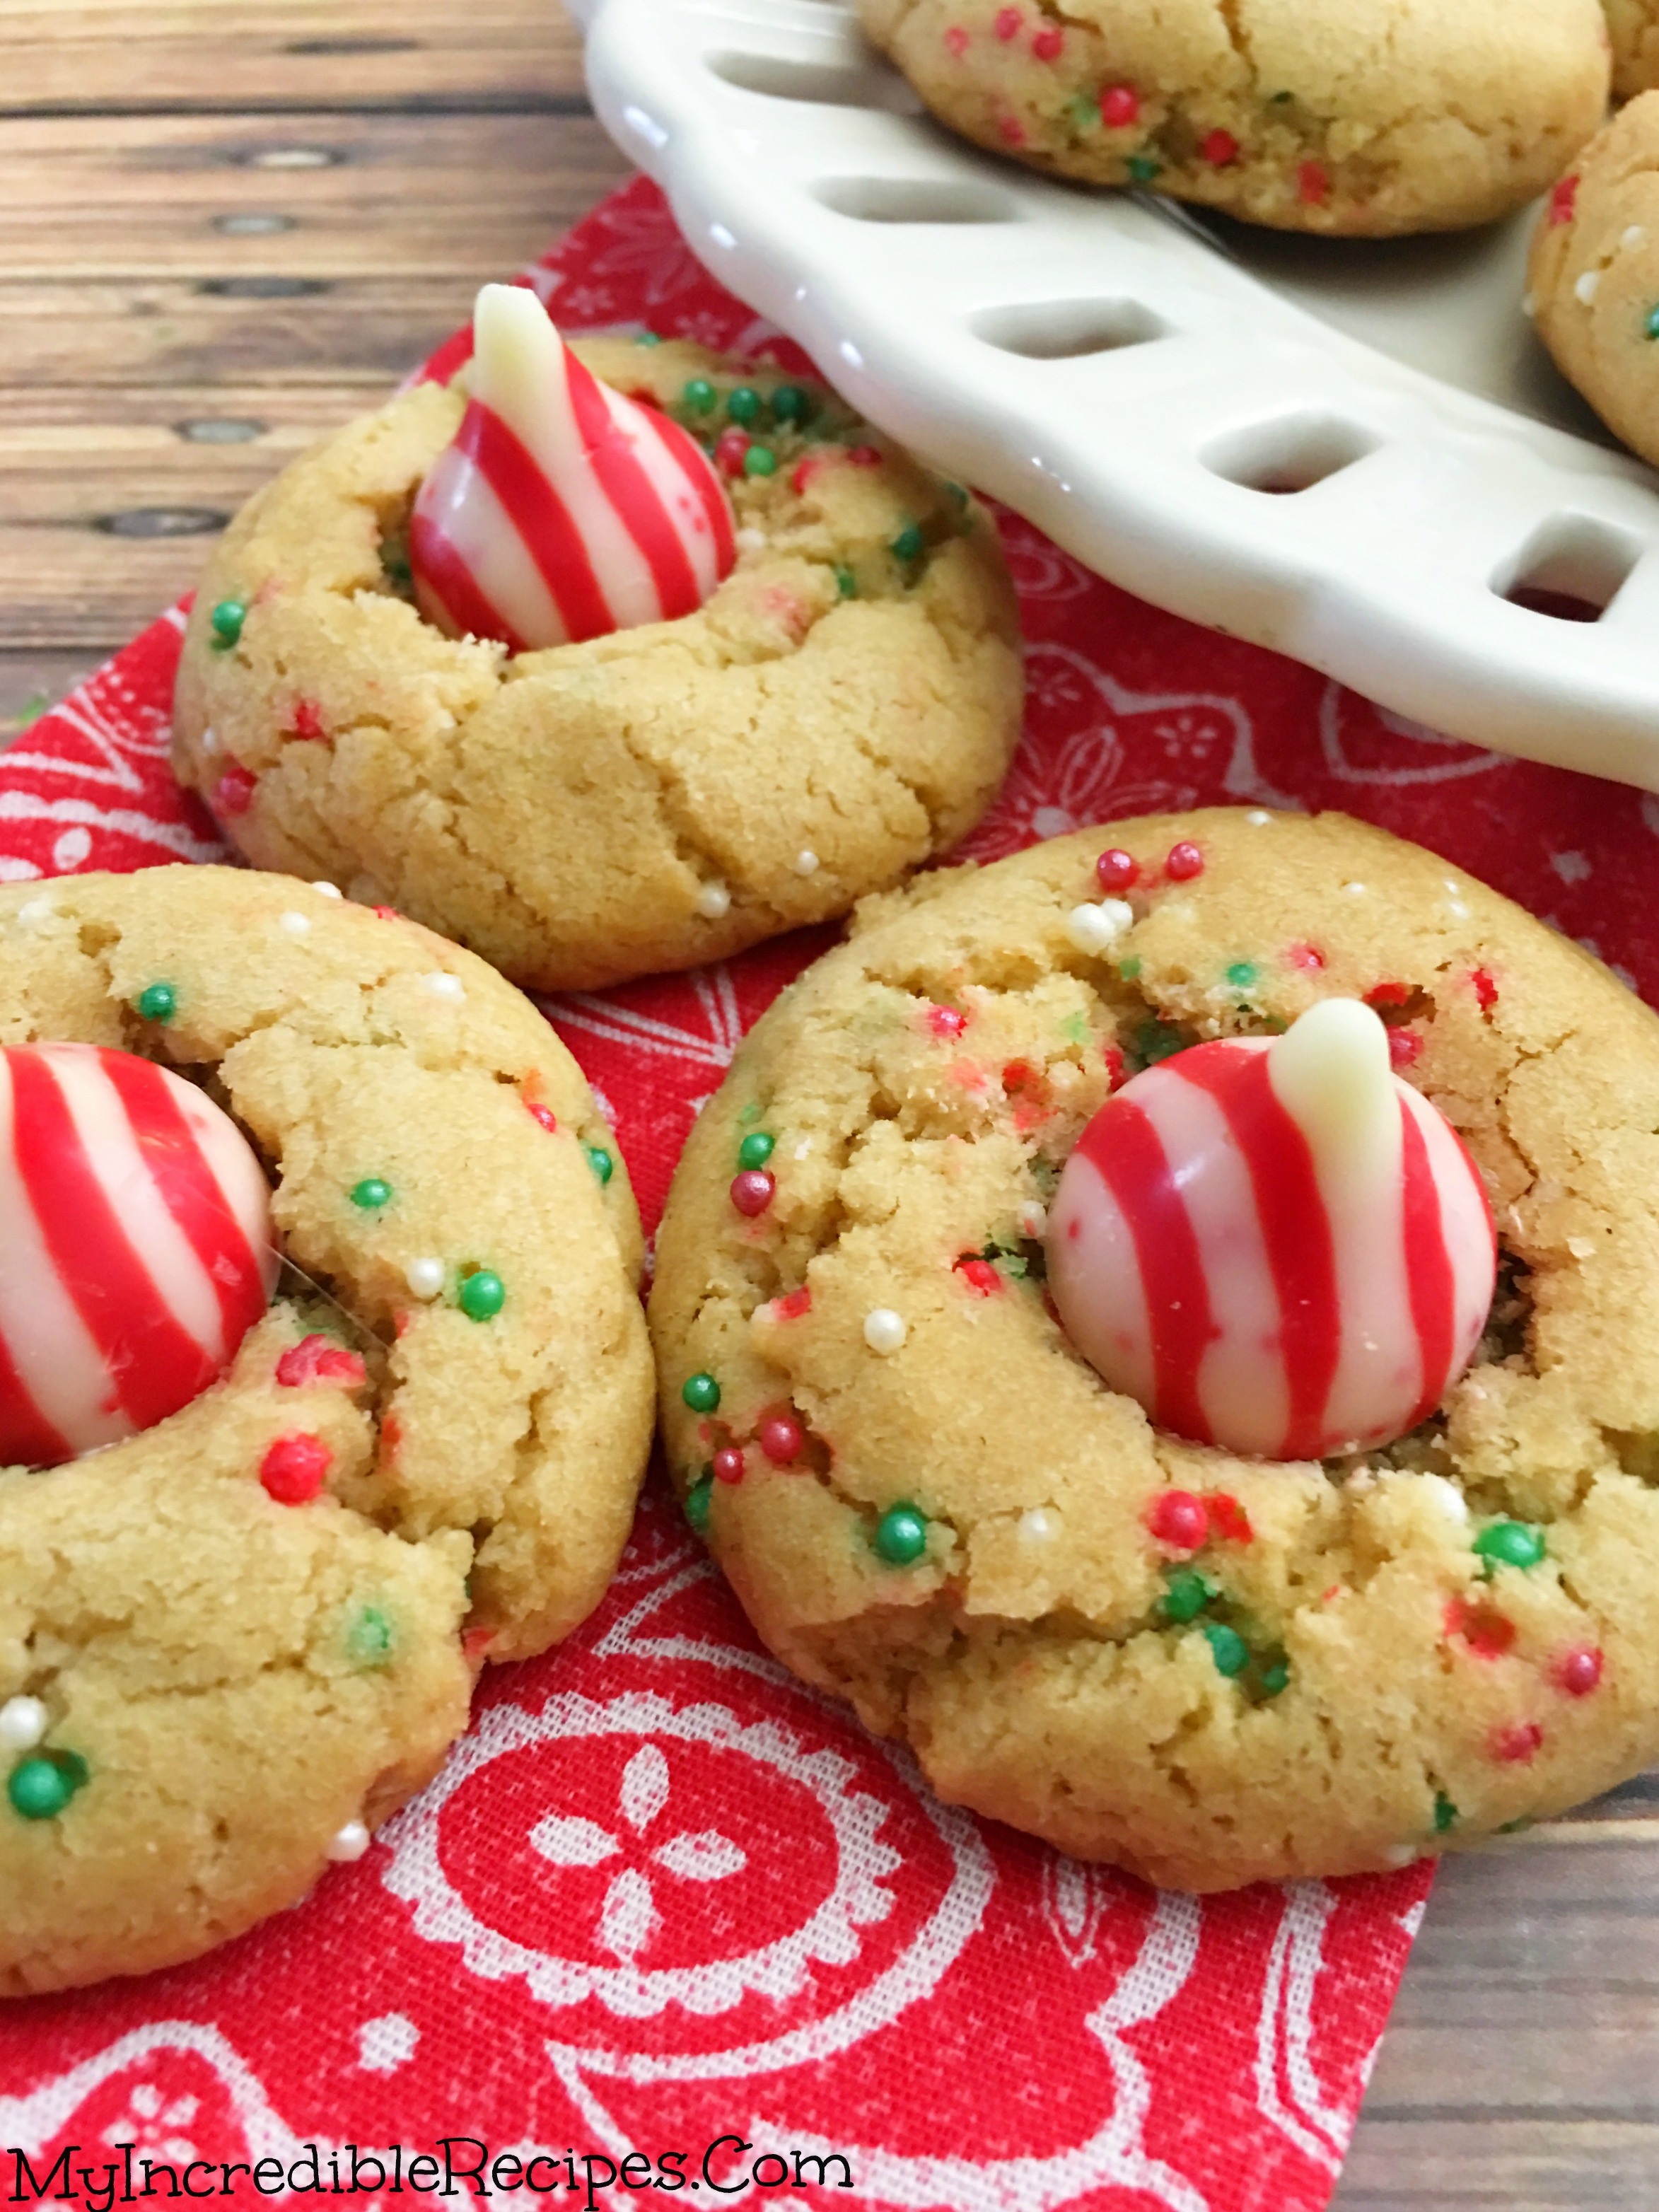 Pics Of Christmas Cookies  Peanut Butter Christmas Cookies